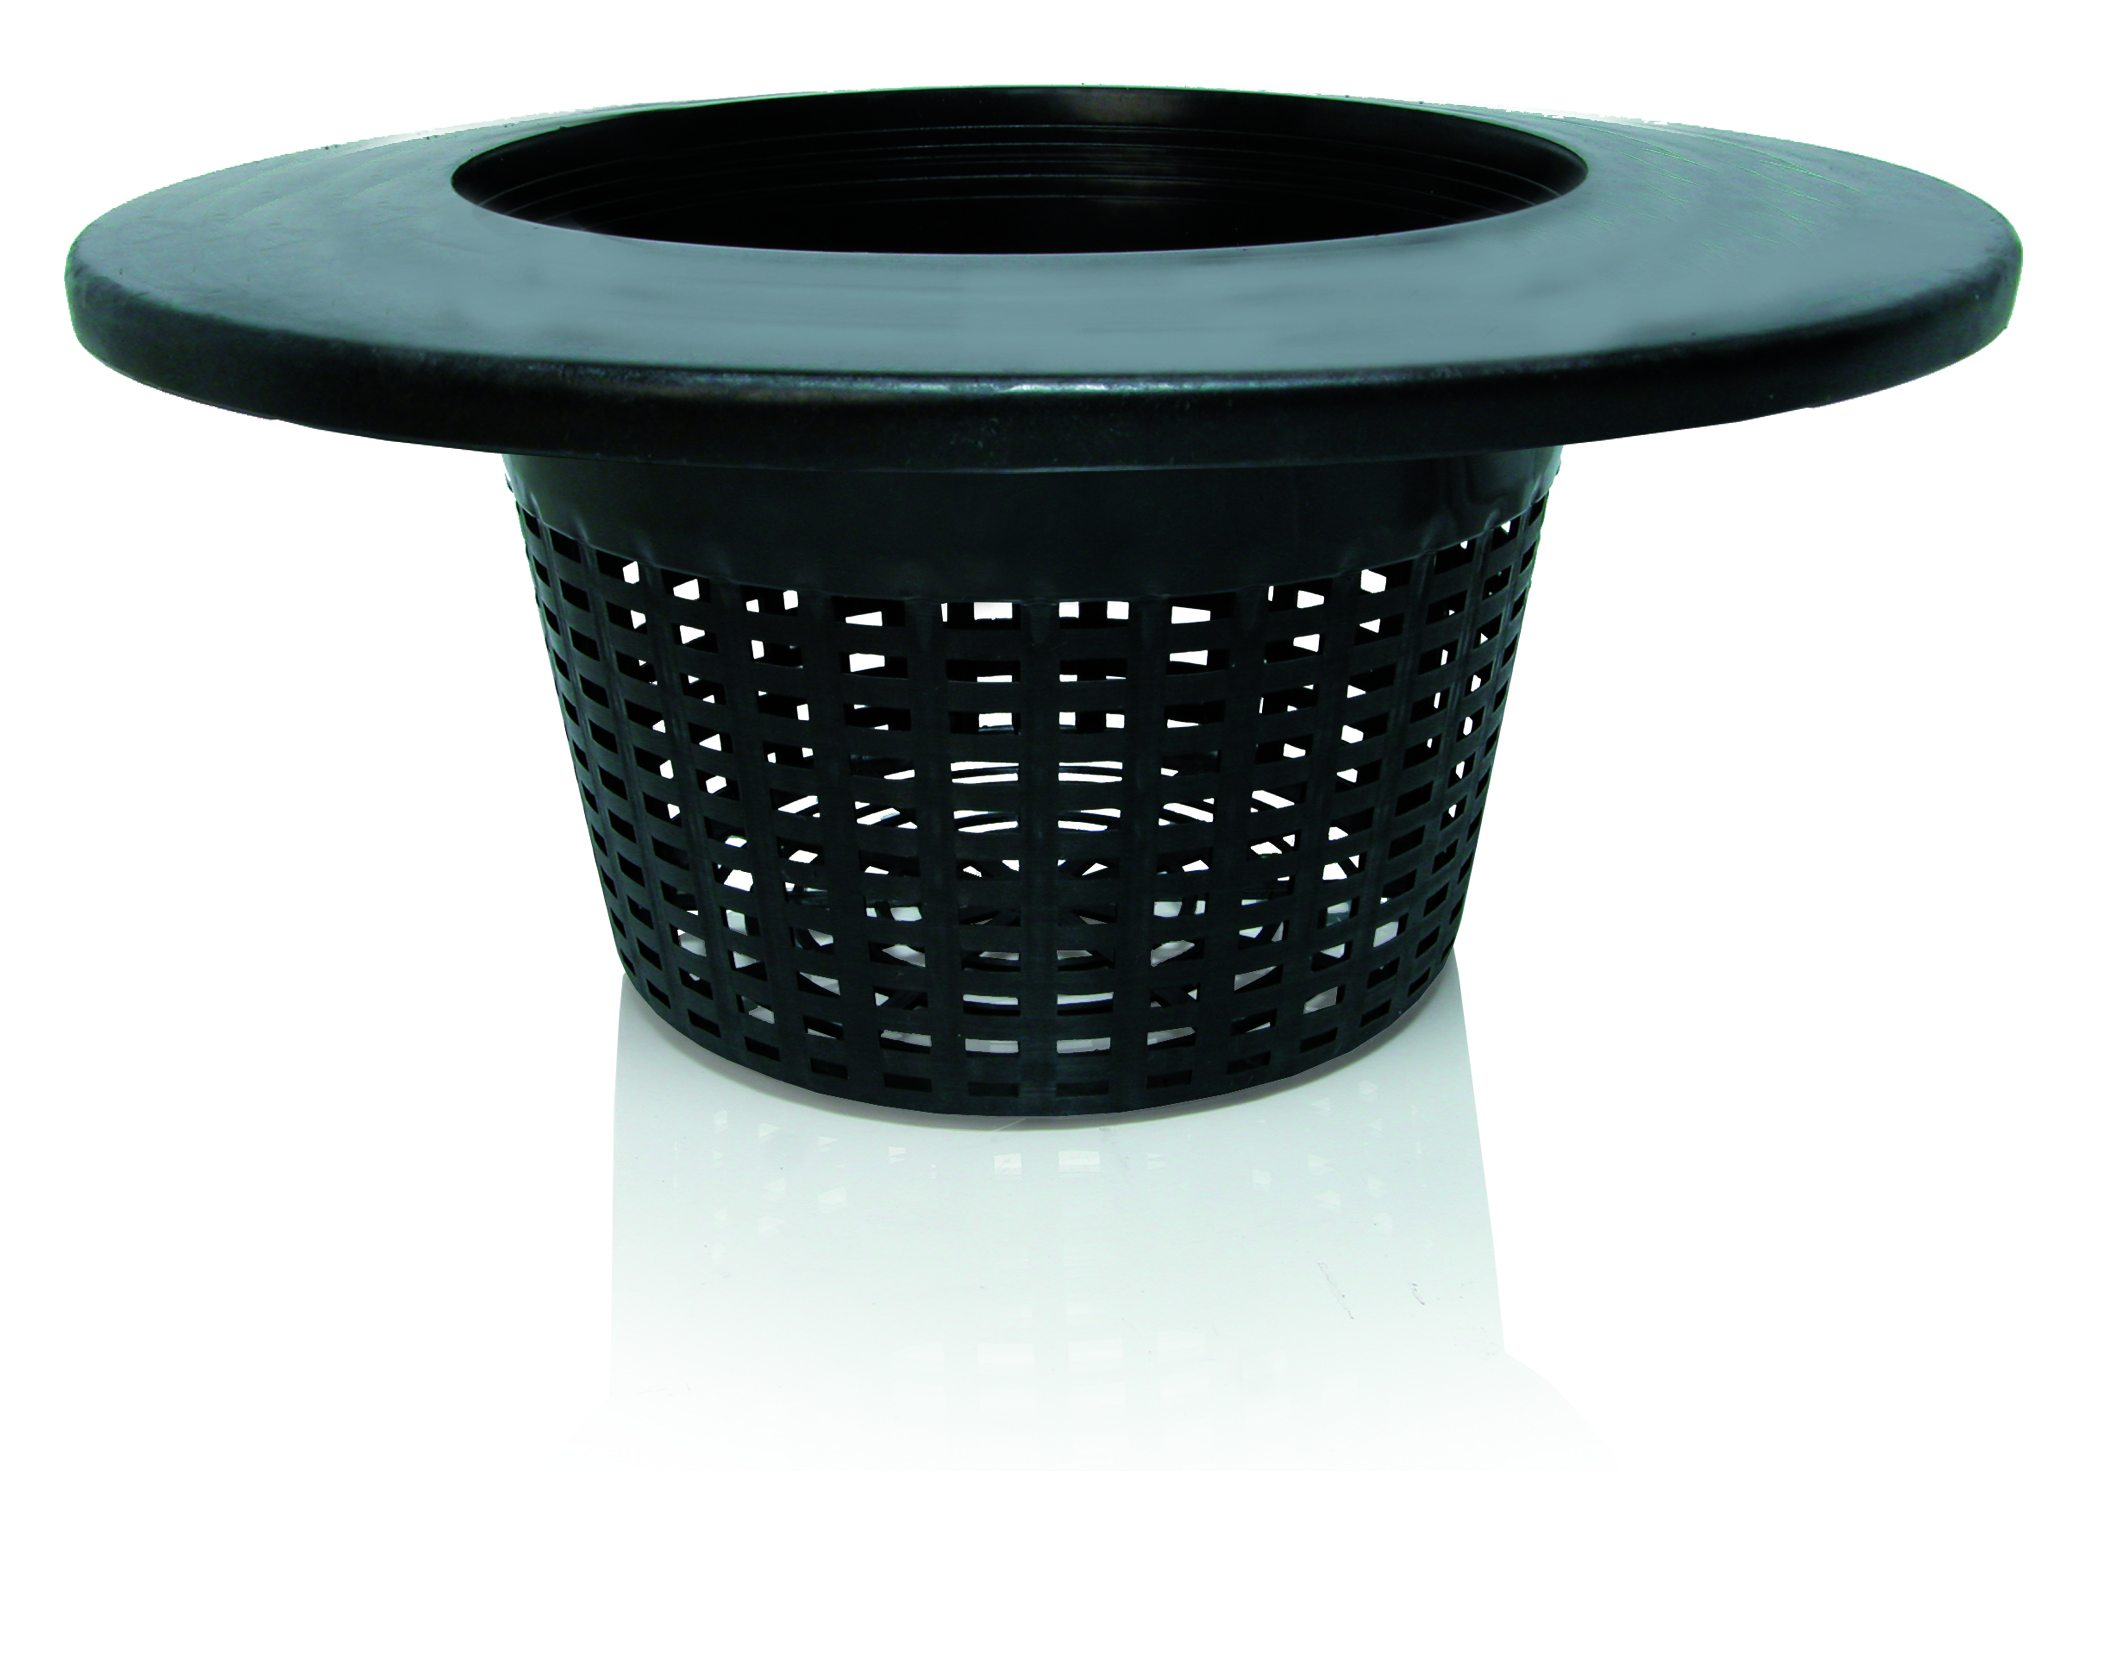 HydroFarm 8 Inch Wide Lip Bucket Basket Lids Case of 25